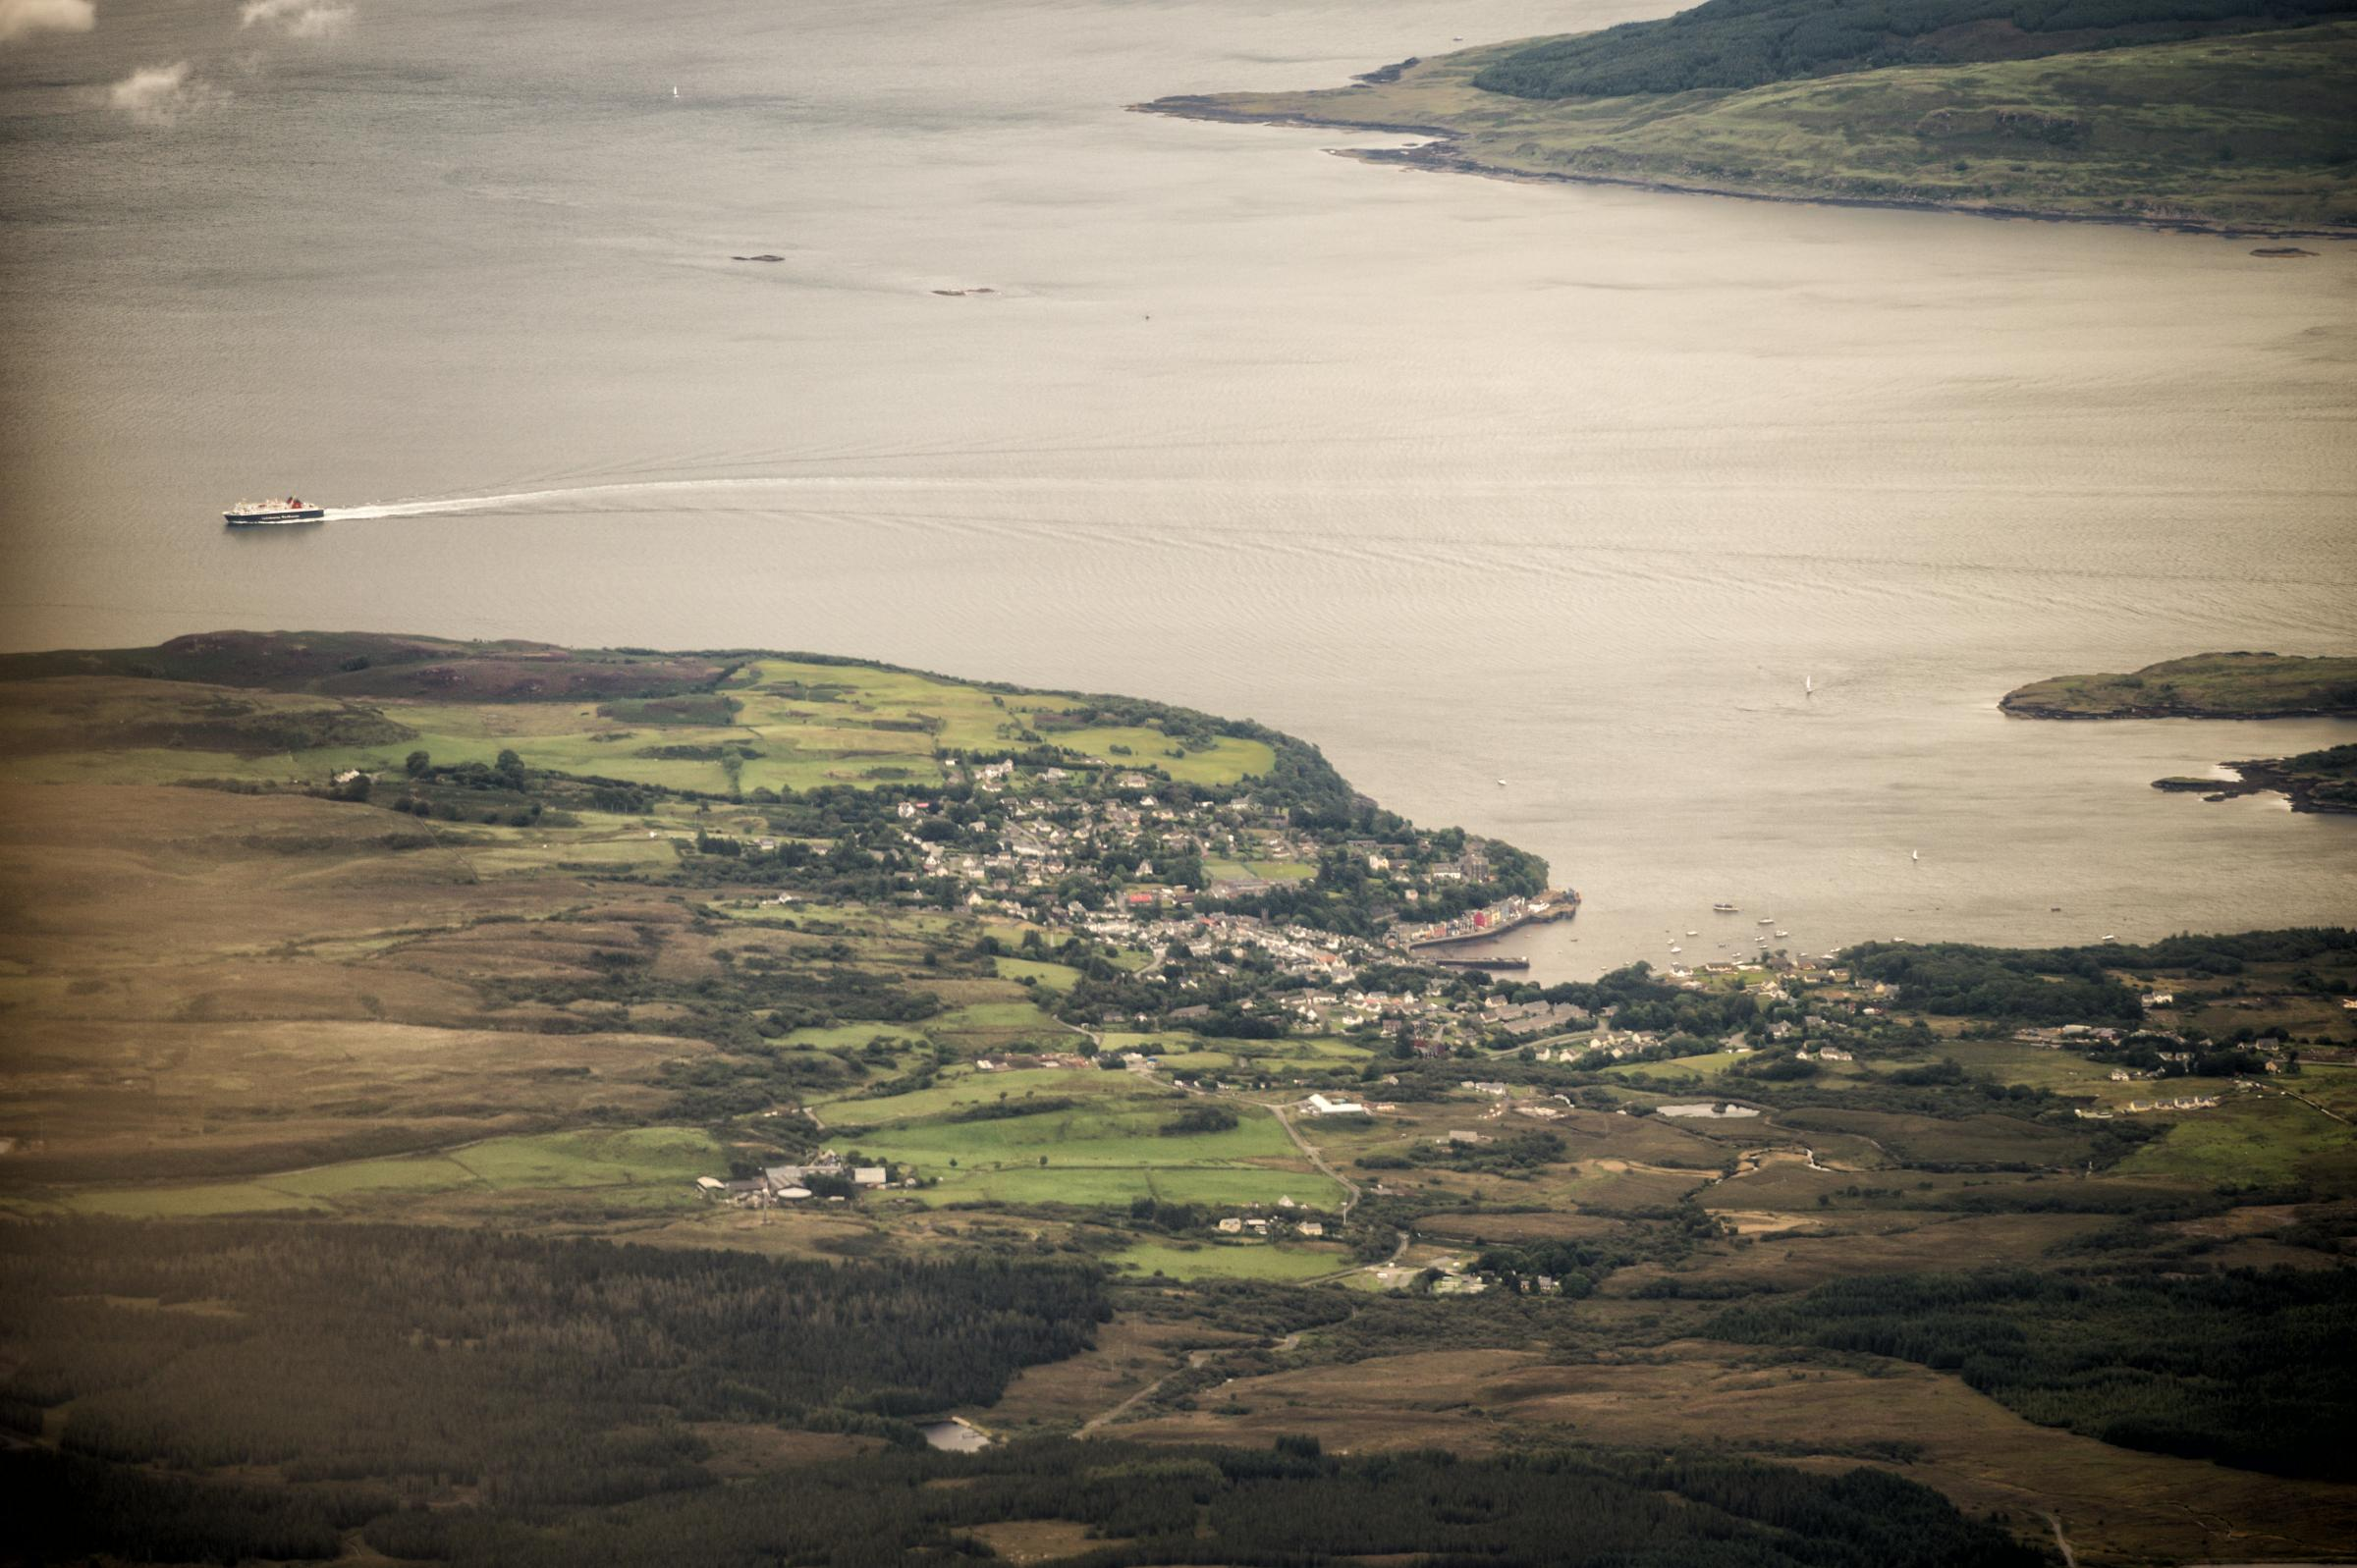 Scotland could lead the charge with slow, sustainable tourism | The